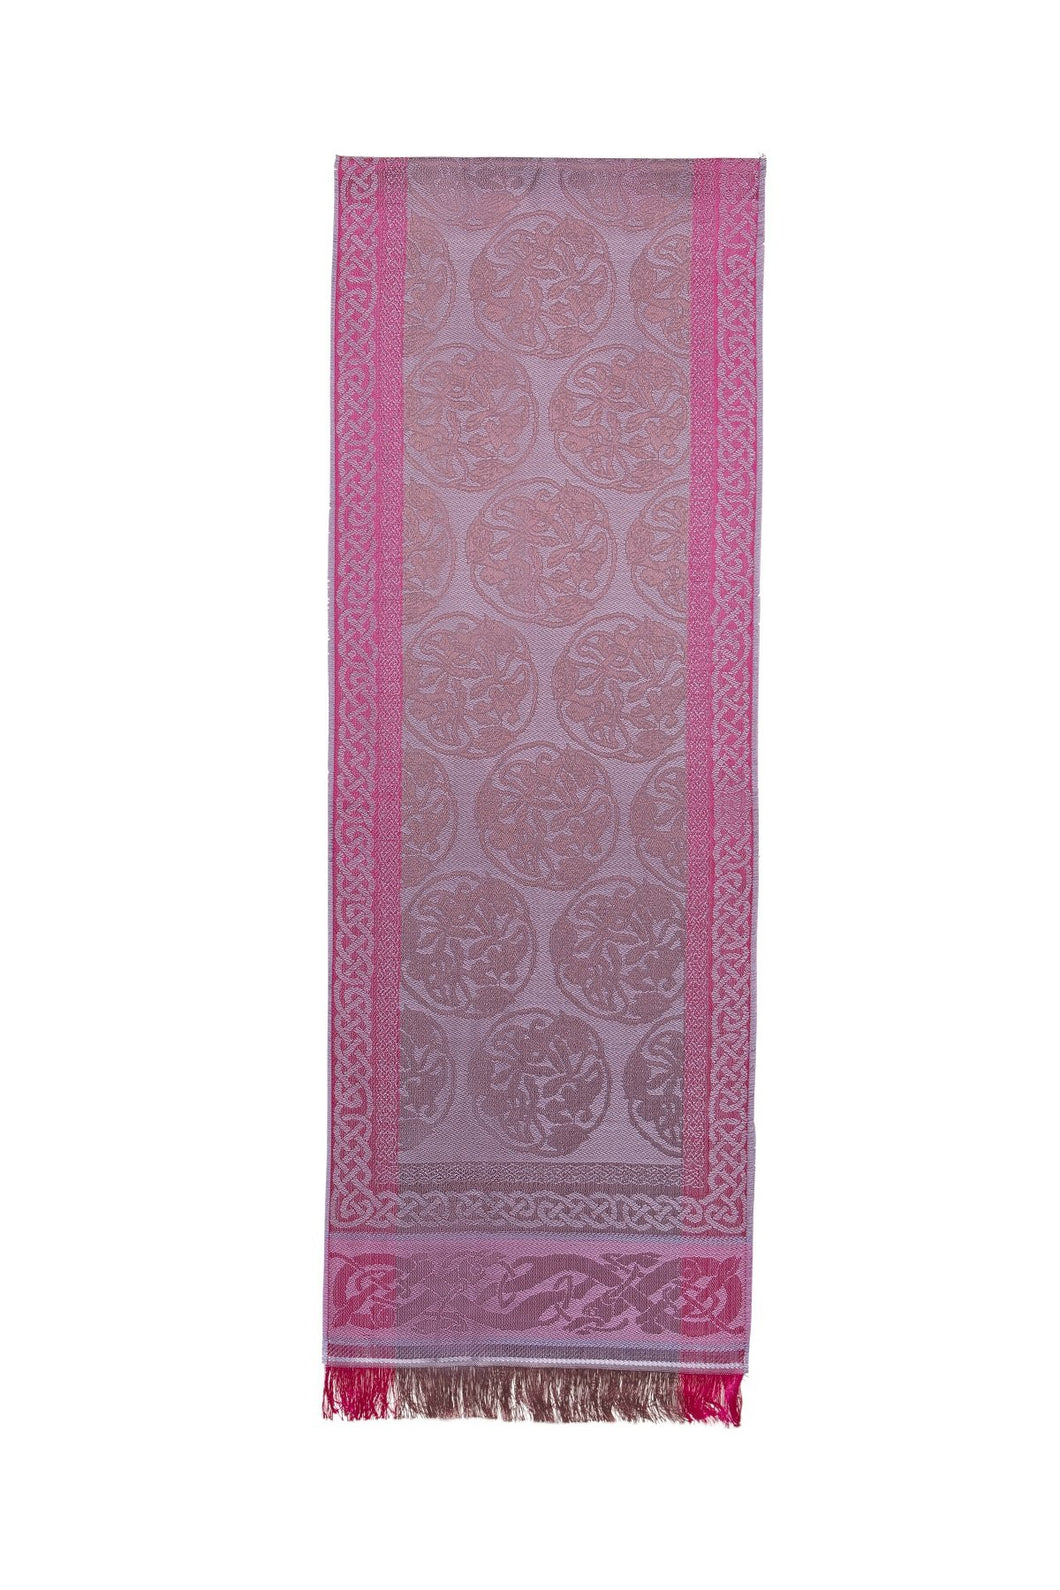 Jimmy Hourihan Scarf with Celtic Motif